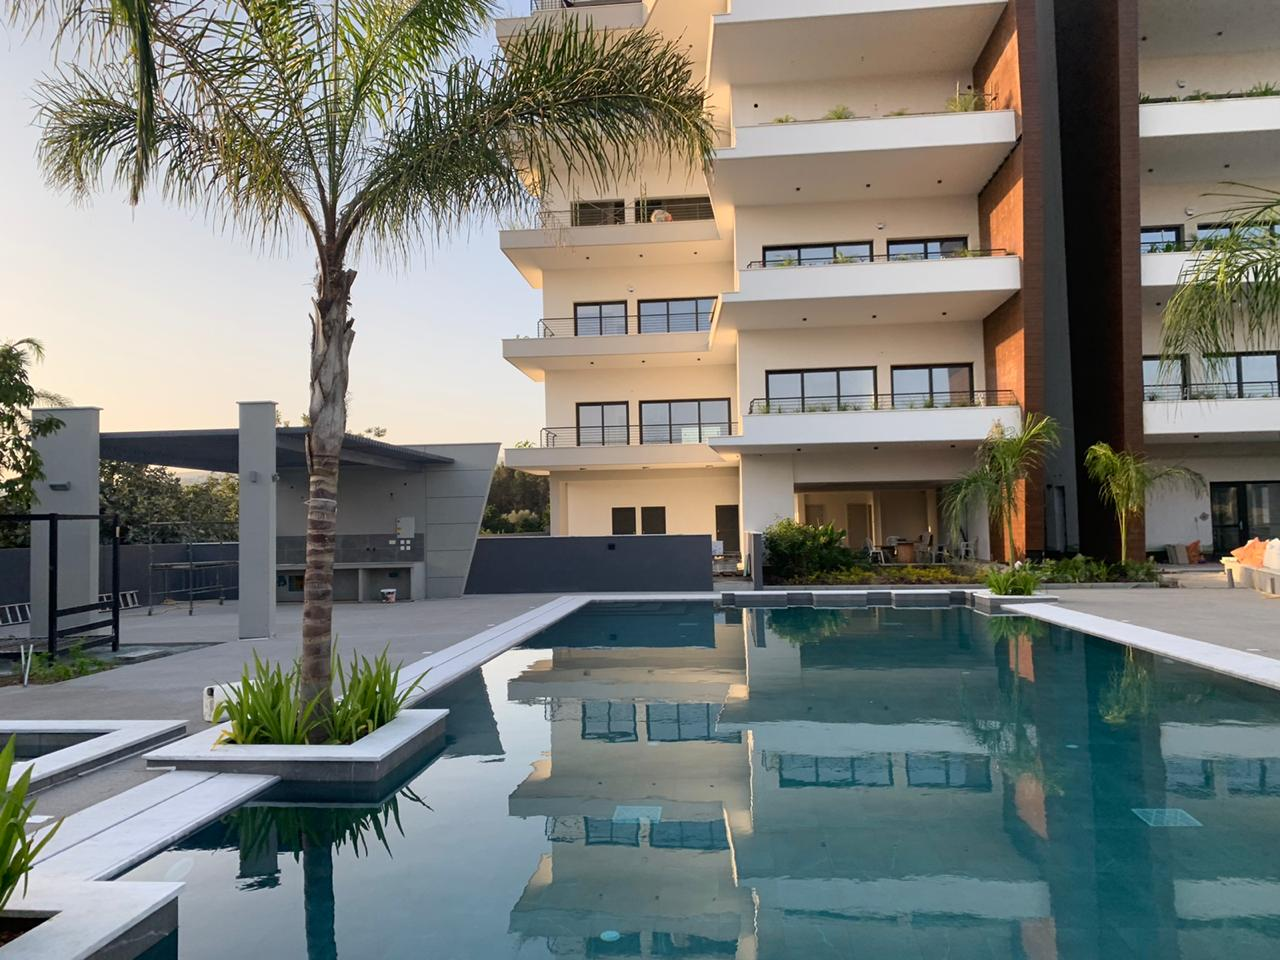 Royal Gardens Residences Front View With Pool